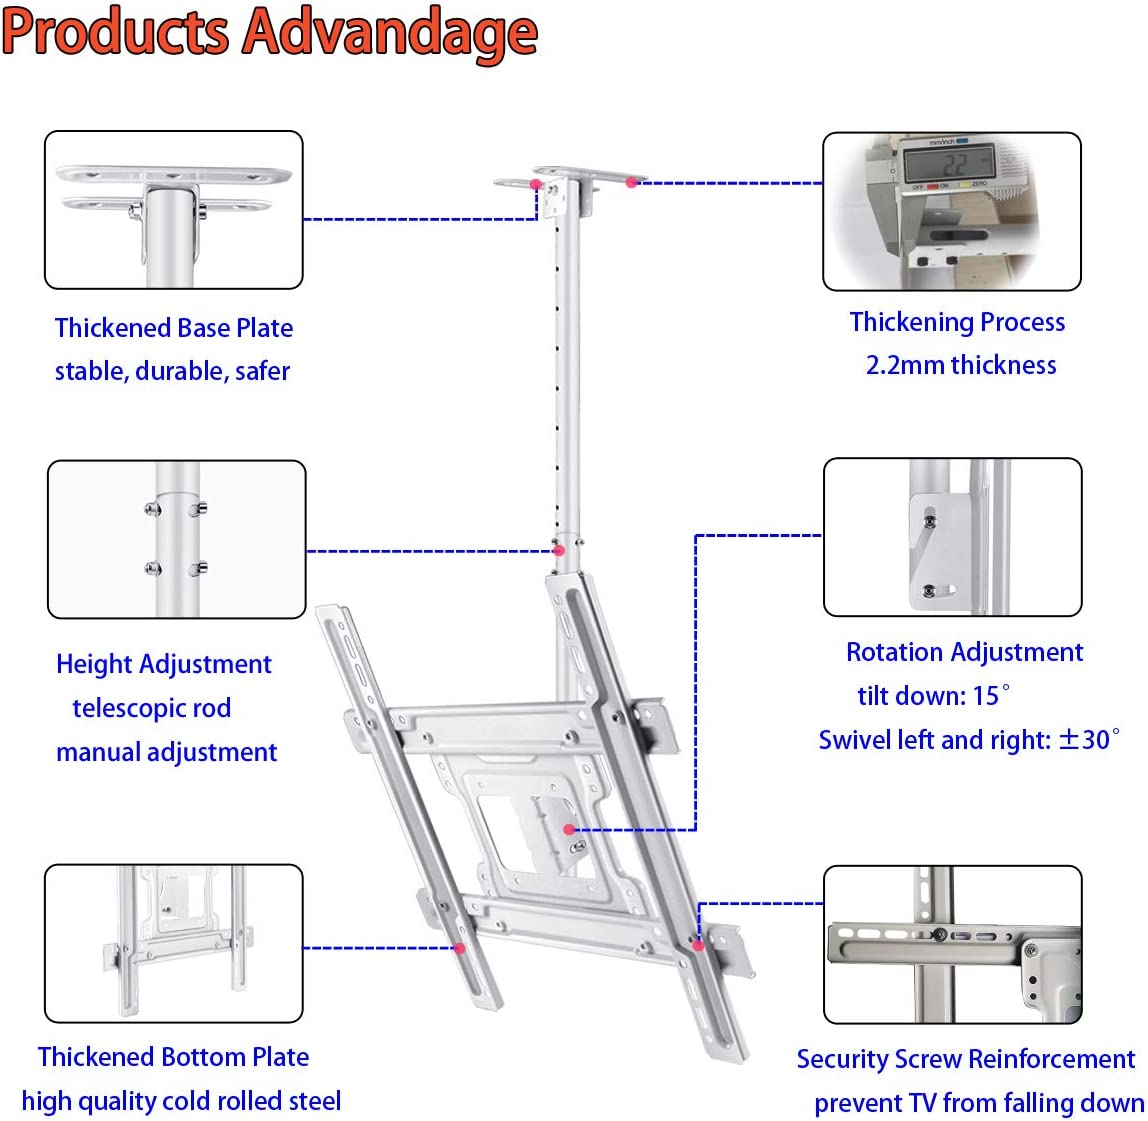 JXMTSPW TV Ceiling Mount White Monitor Wall Bracket Most 32-60 inch Flat Curved Screen Display Adjustable Height Tilt Swivel Full Motion Fit 39